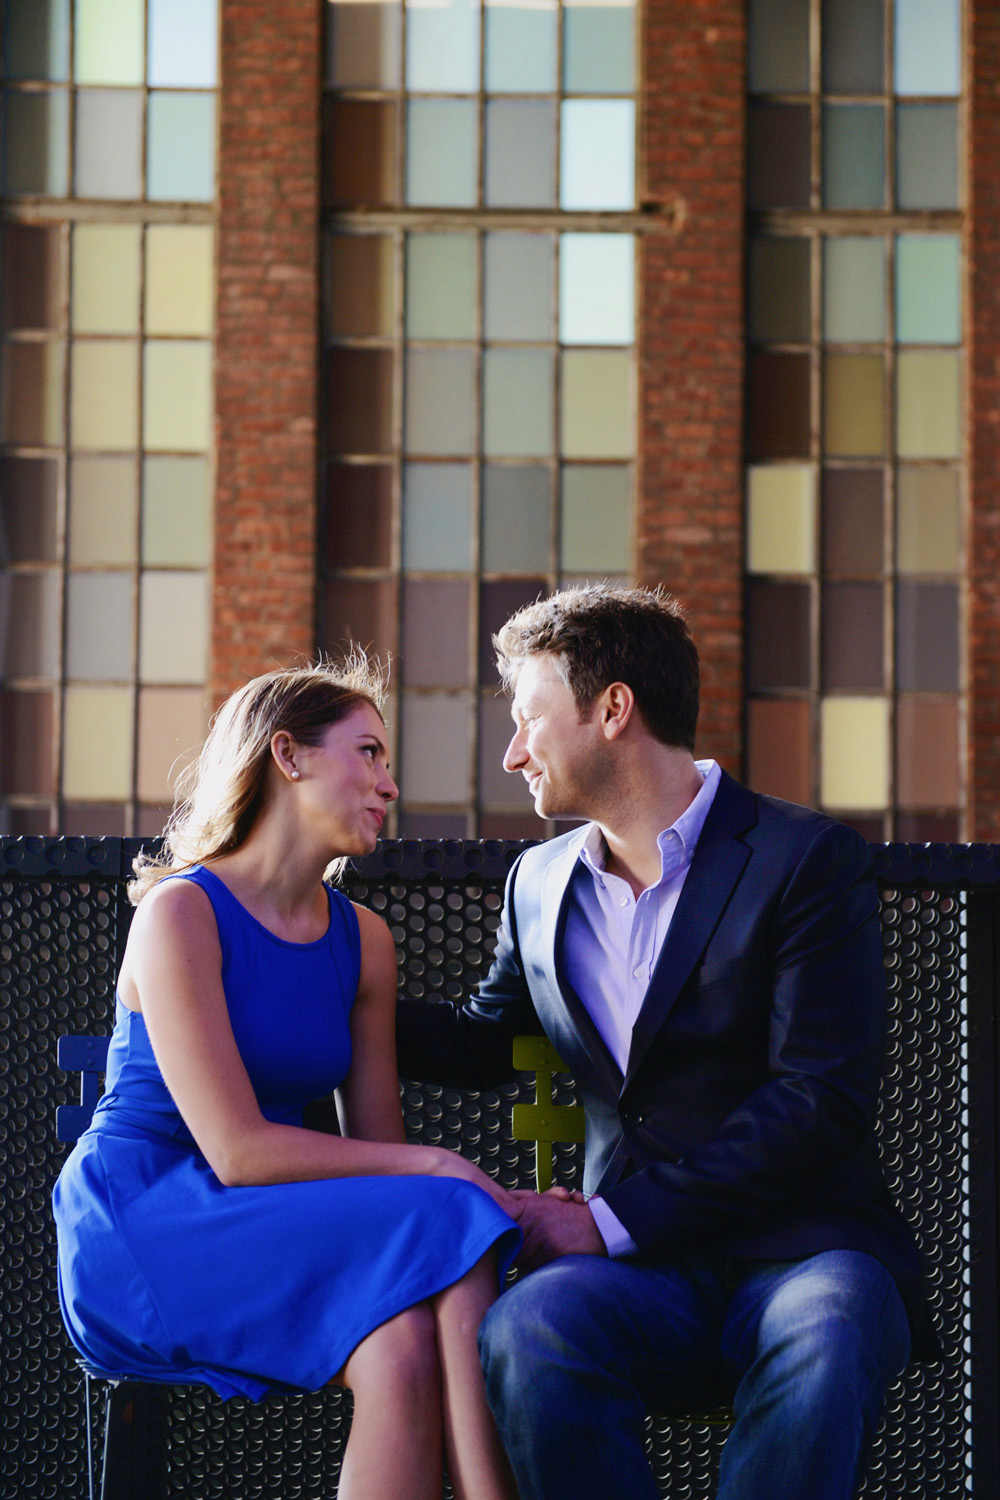 Engagement photos taken in Grand Central & Meatpacking District New York by Engagement Photographers NYC XOANDREA